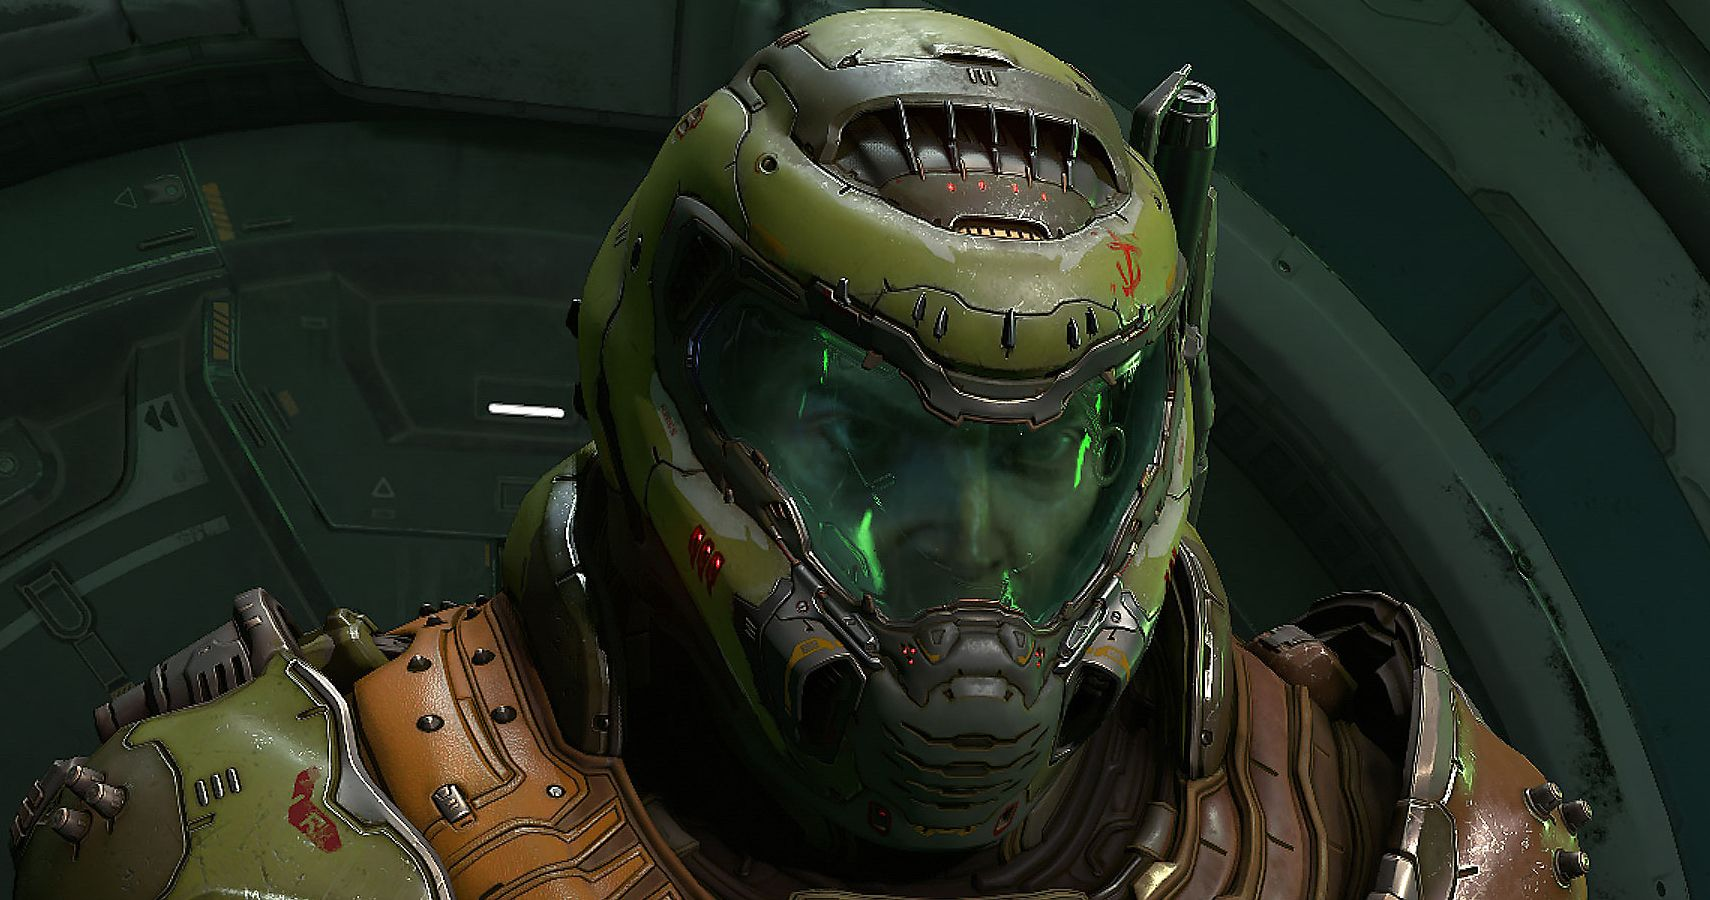 Doom Eternal Producer Marty Stratton Pens Open Letter Regarding